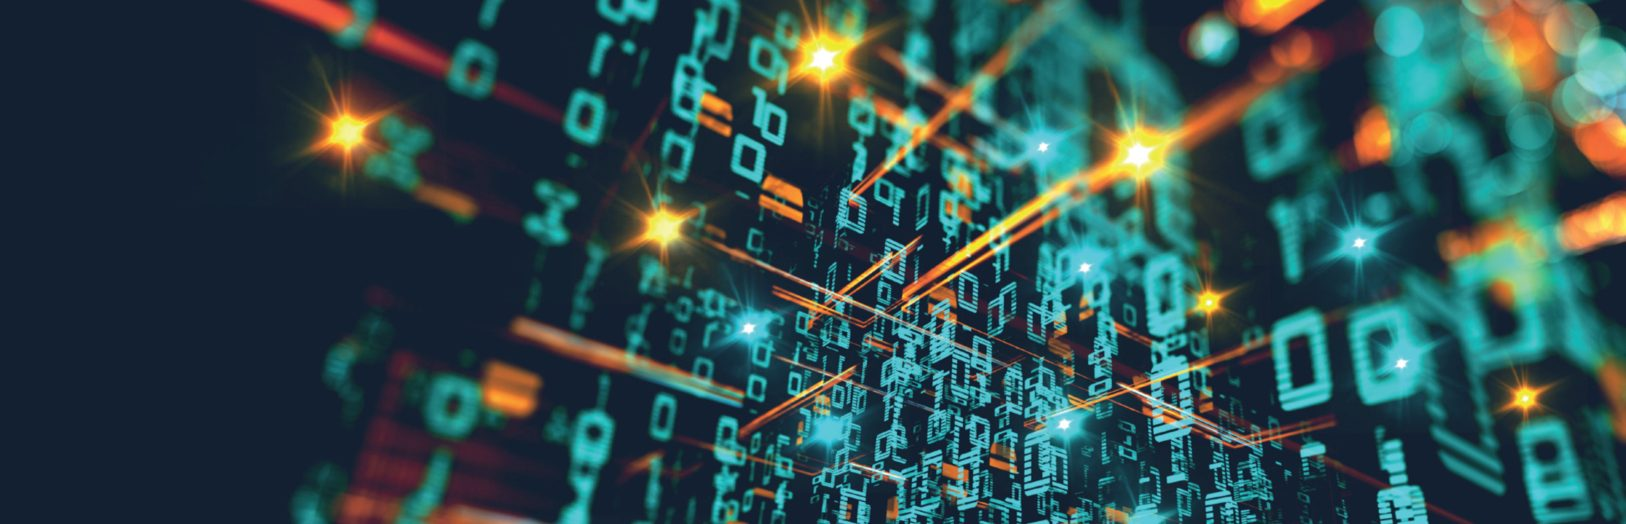 Digital Transformation Industry 4.0, the Fourth Industrial Revolution, Smart Manufacturing Data Analytics Digital Transformation Connected value chains - stock image